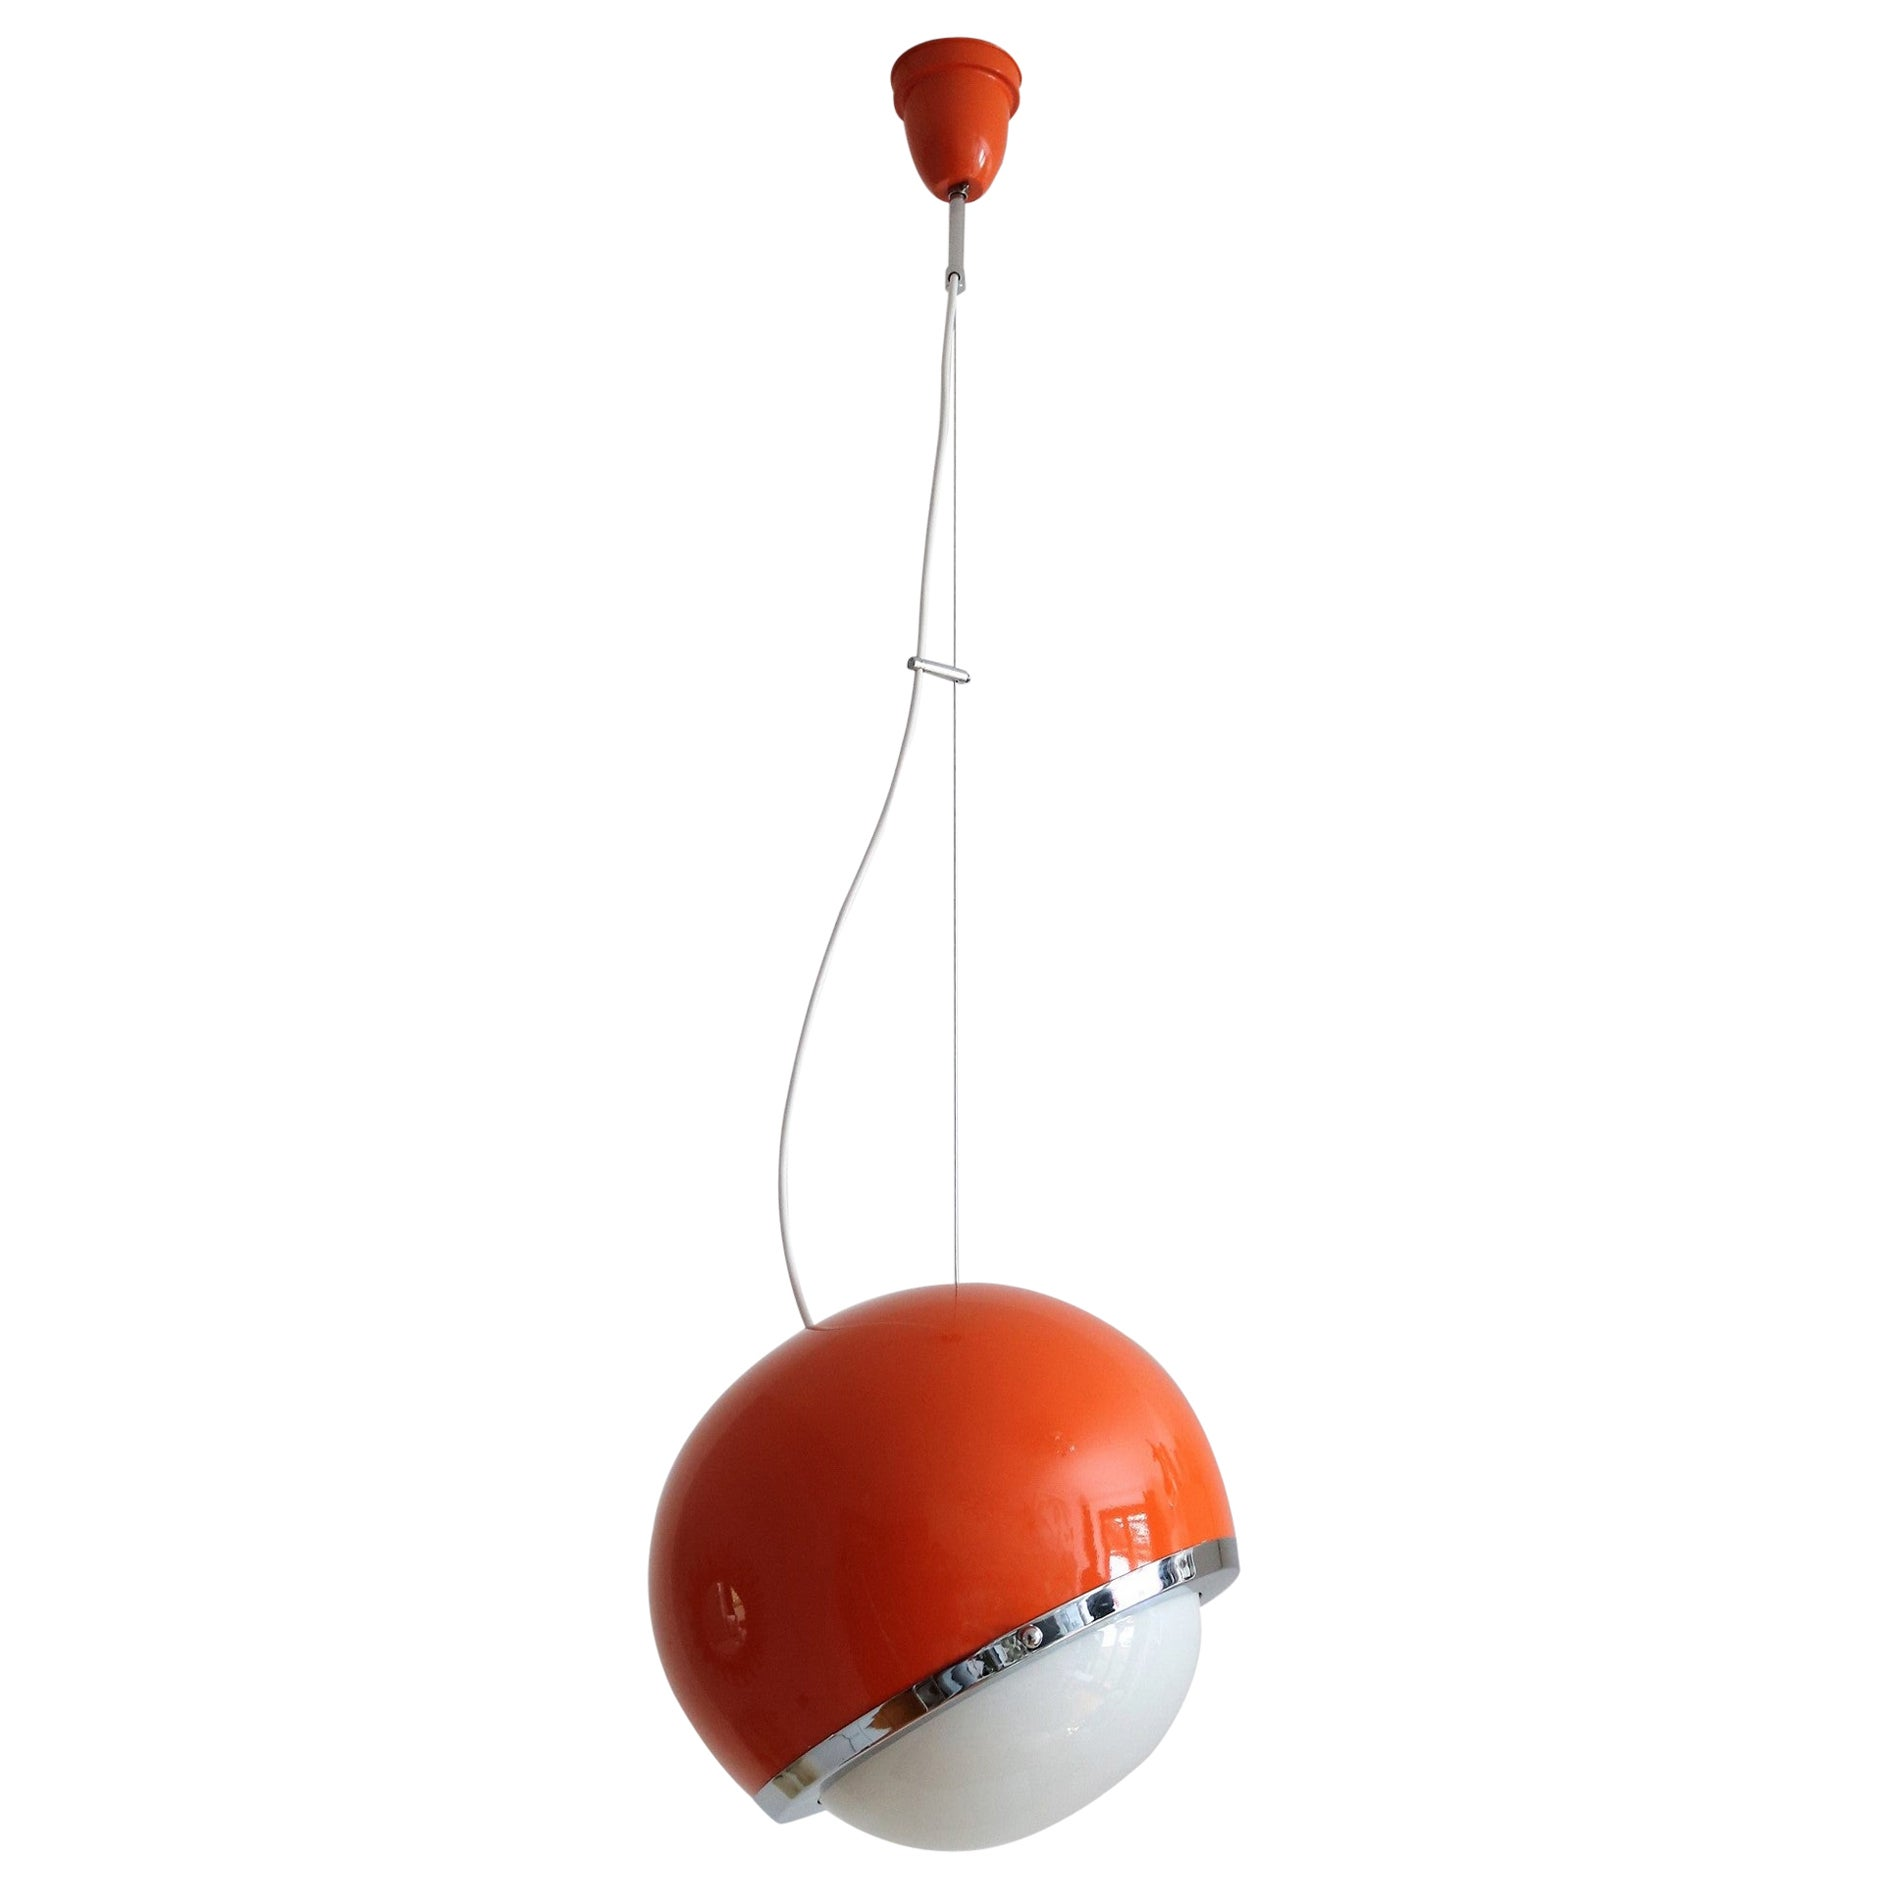 Italian Vintage Pendant Lamp from the Space Age in Glass and Aluminium, 1960s